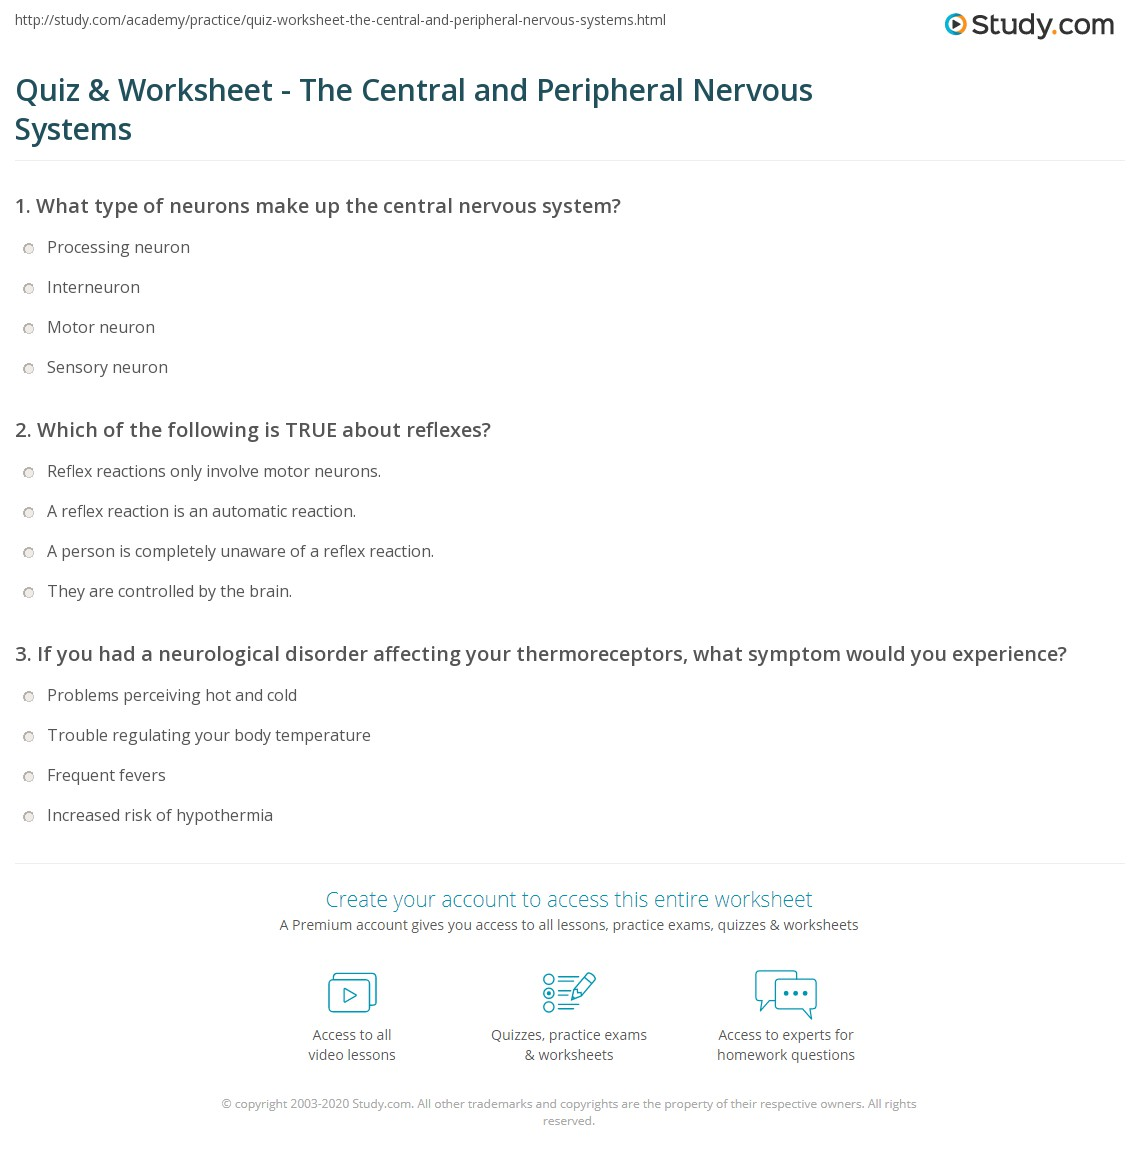 Quiz Worksheet The Central And Peripheral Nervous Systems